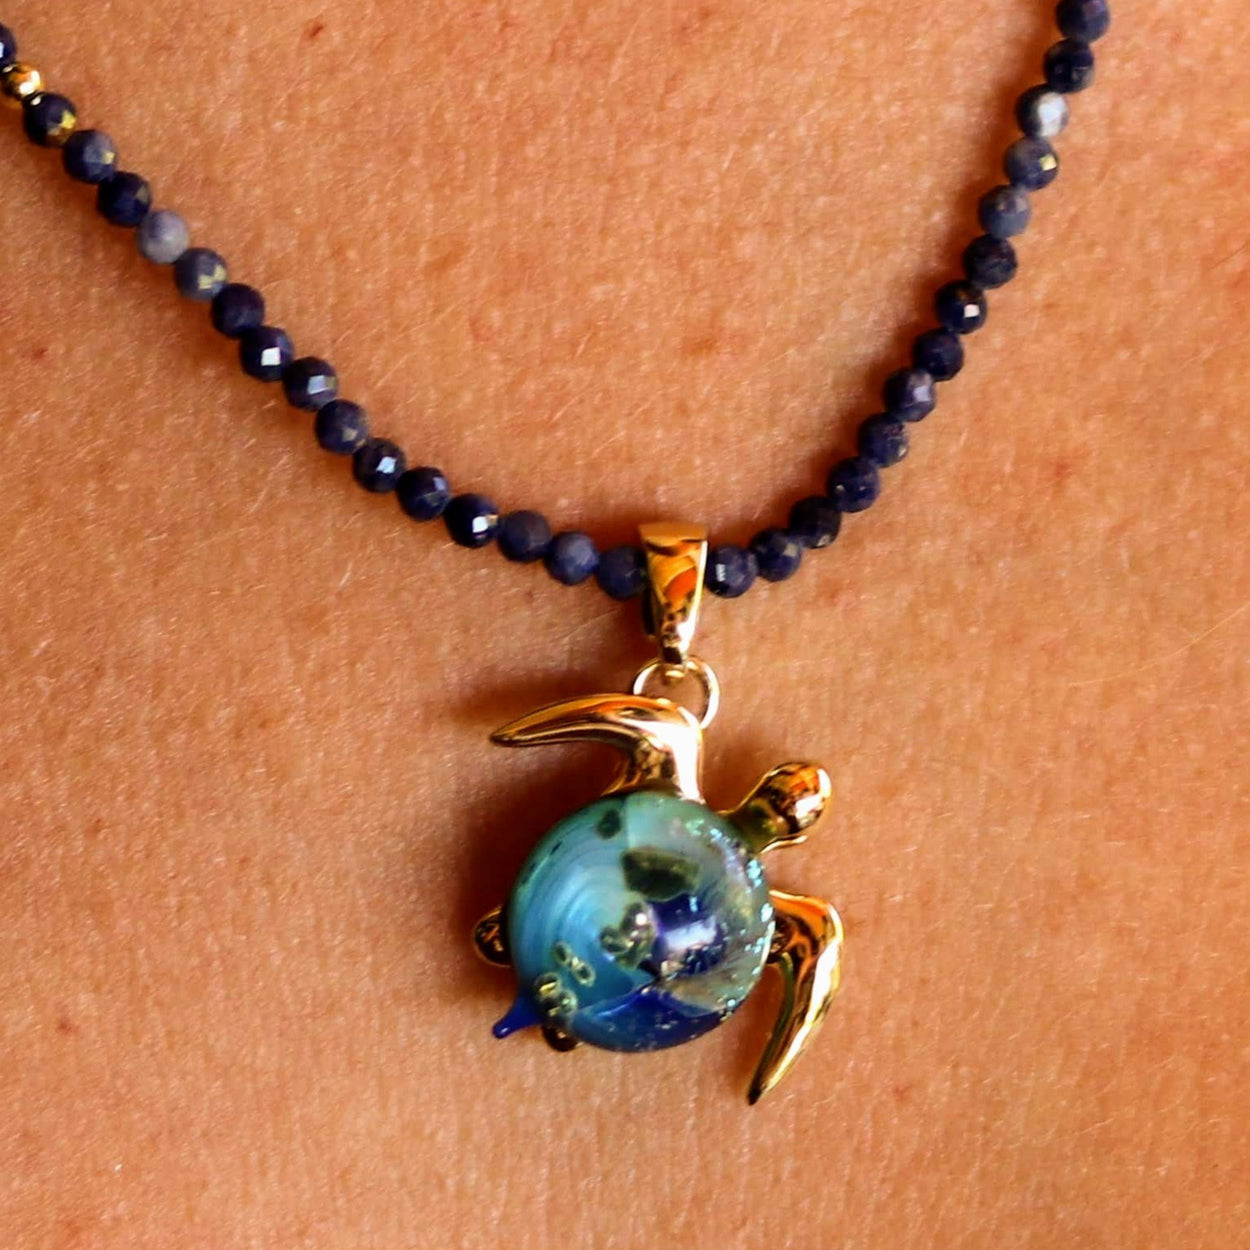 Akoni on Sapphire Gemstone Necklace | The Honu Collection by Amy Wakingwolf